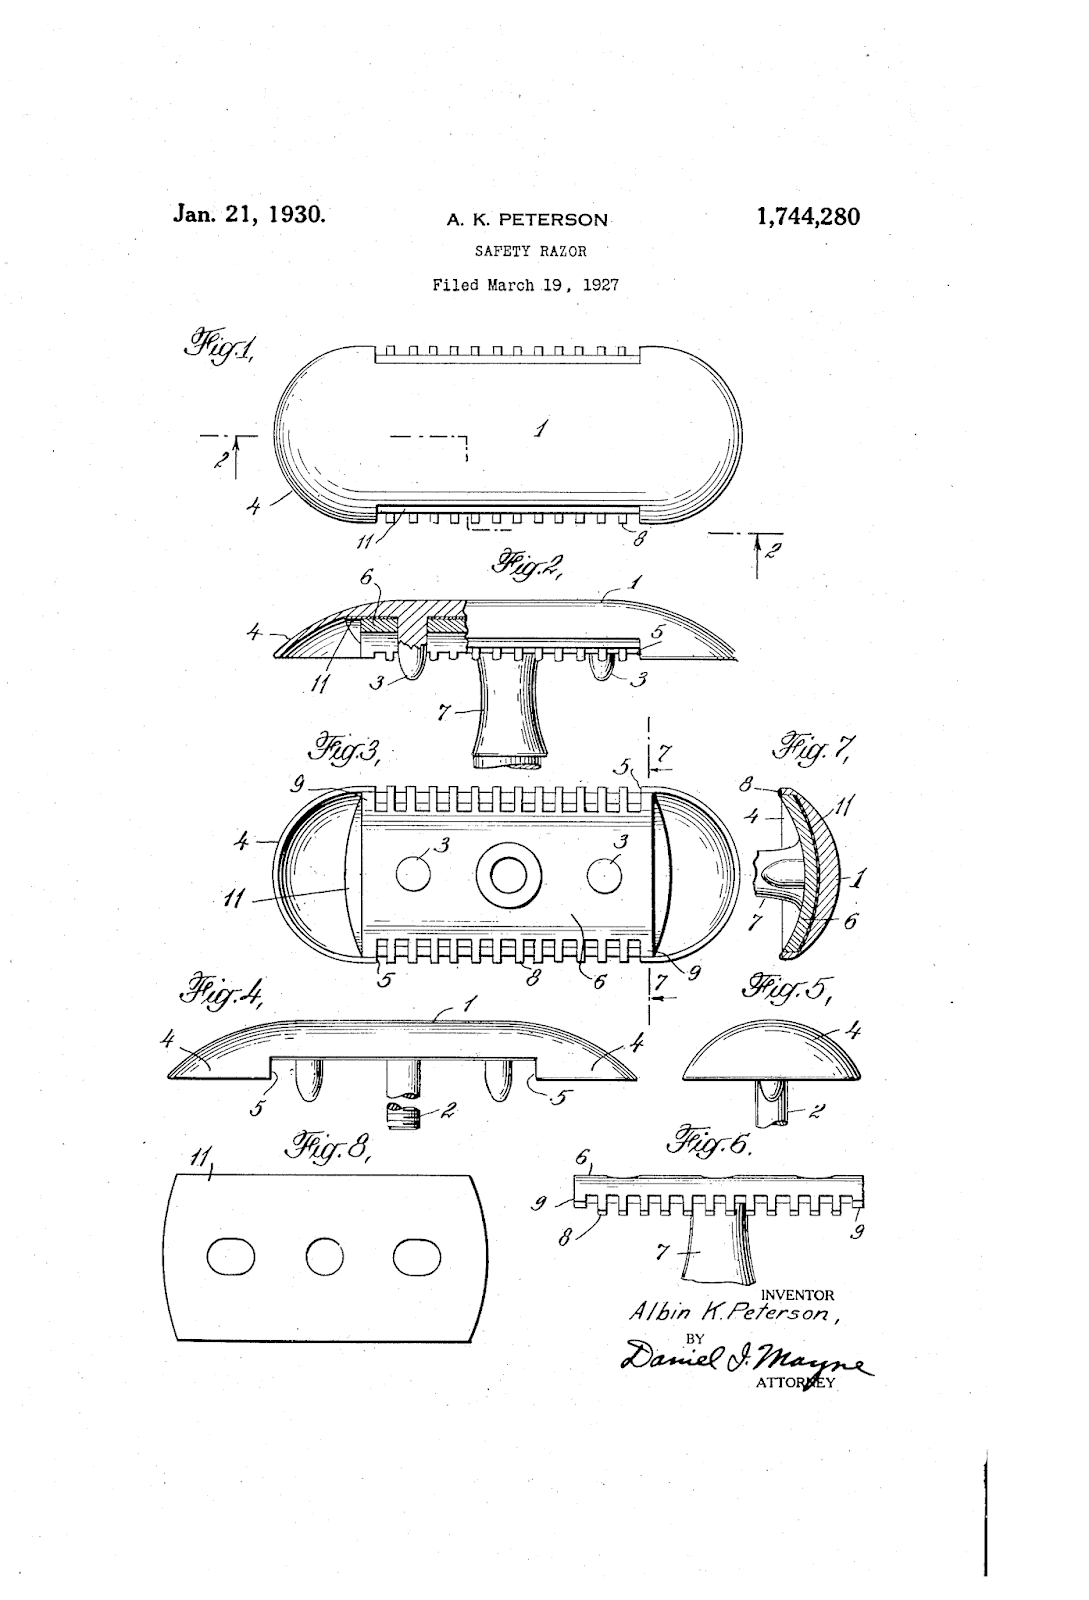 [Image: US1744280-drawings-page-1.png]